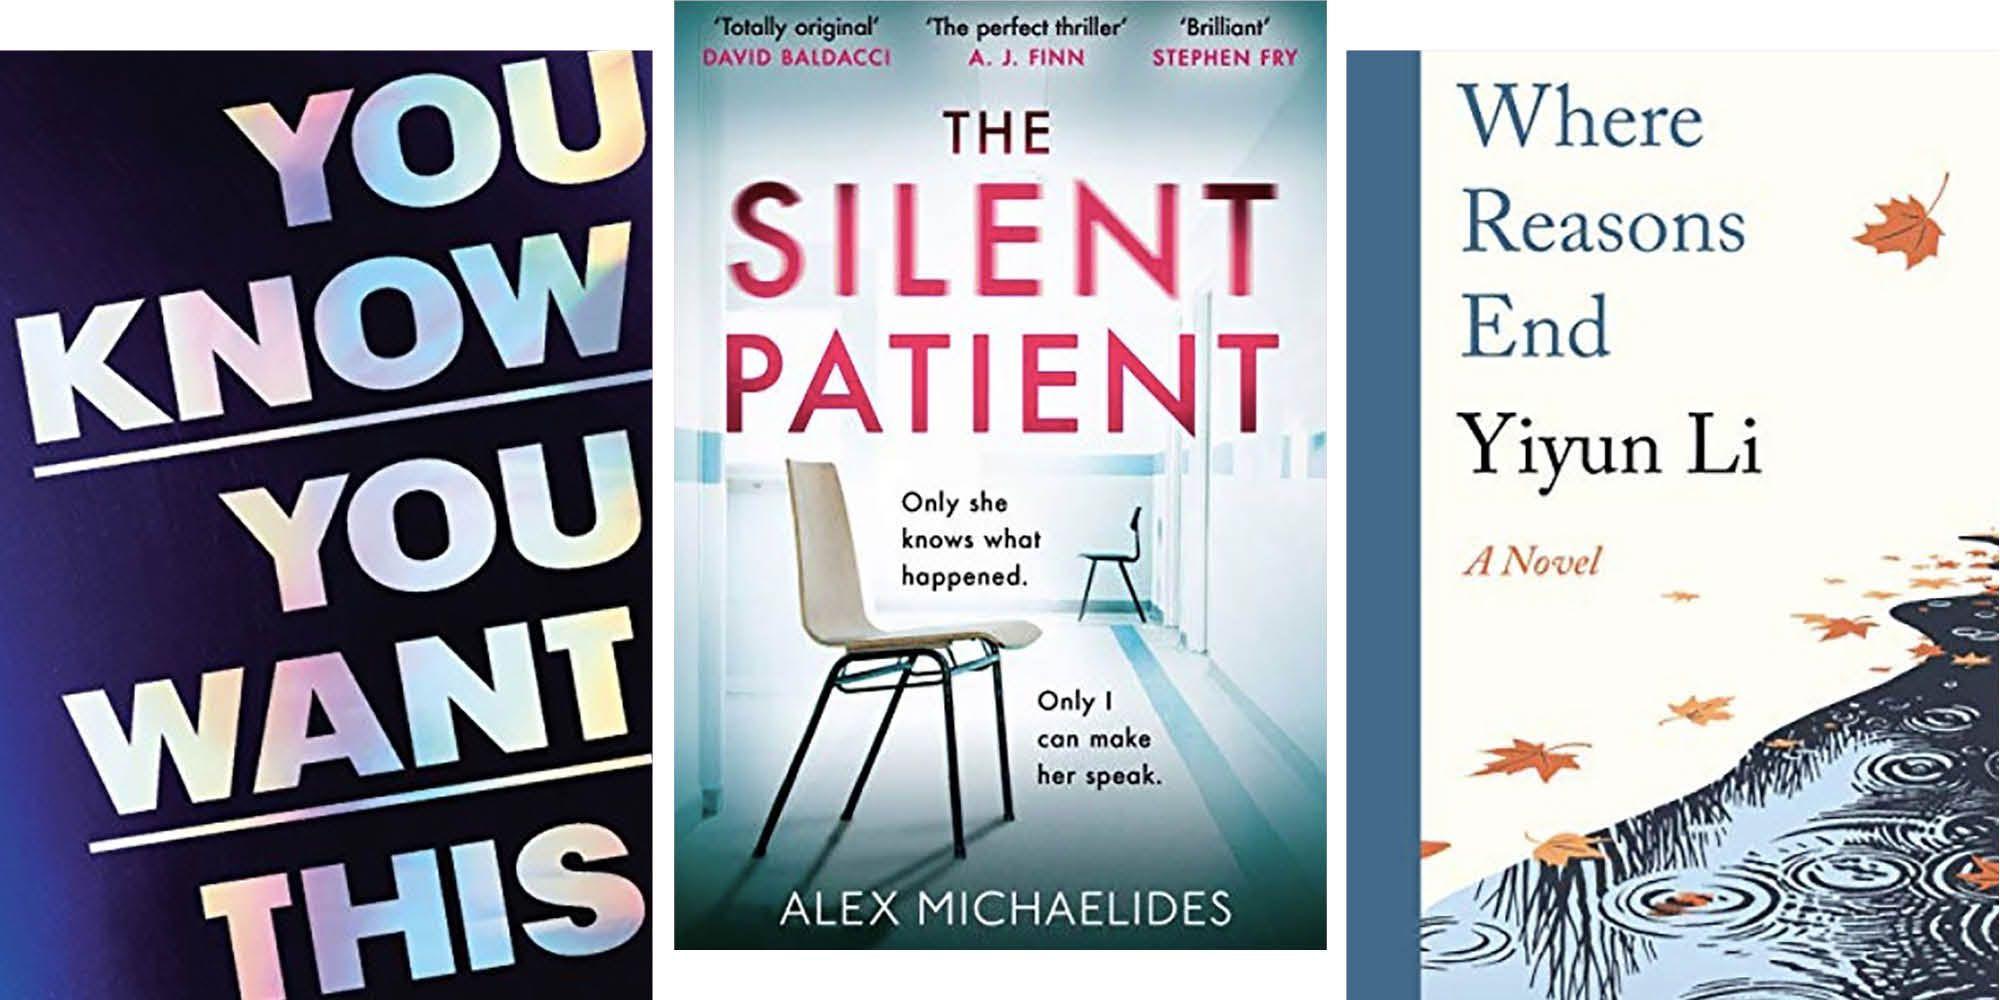 new good books to read, best books to read, good books to read, best selling books, best books 2019, book review, books to read, new books, february 2019, books, new novel releases